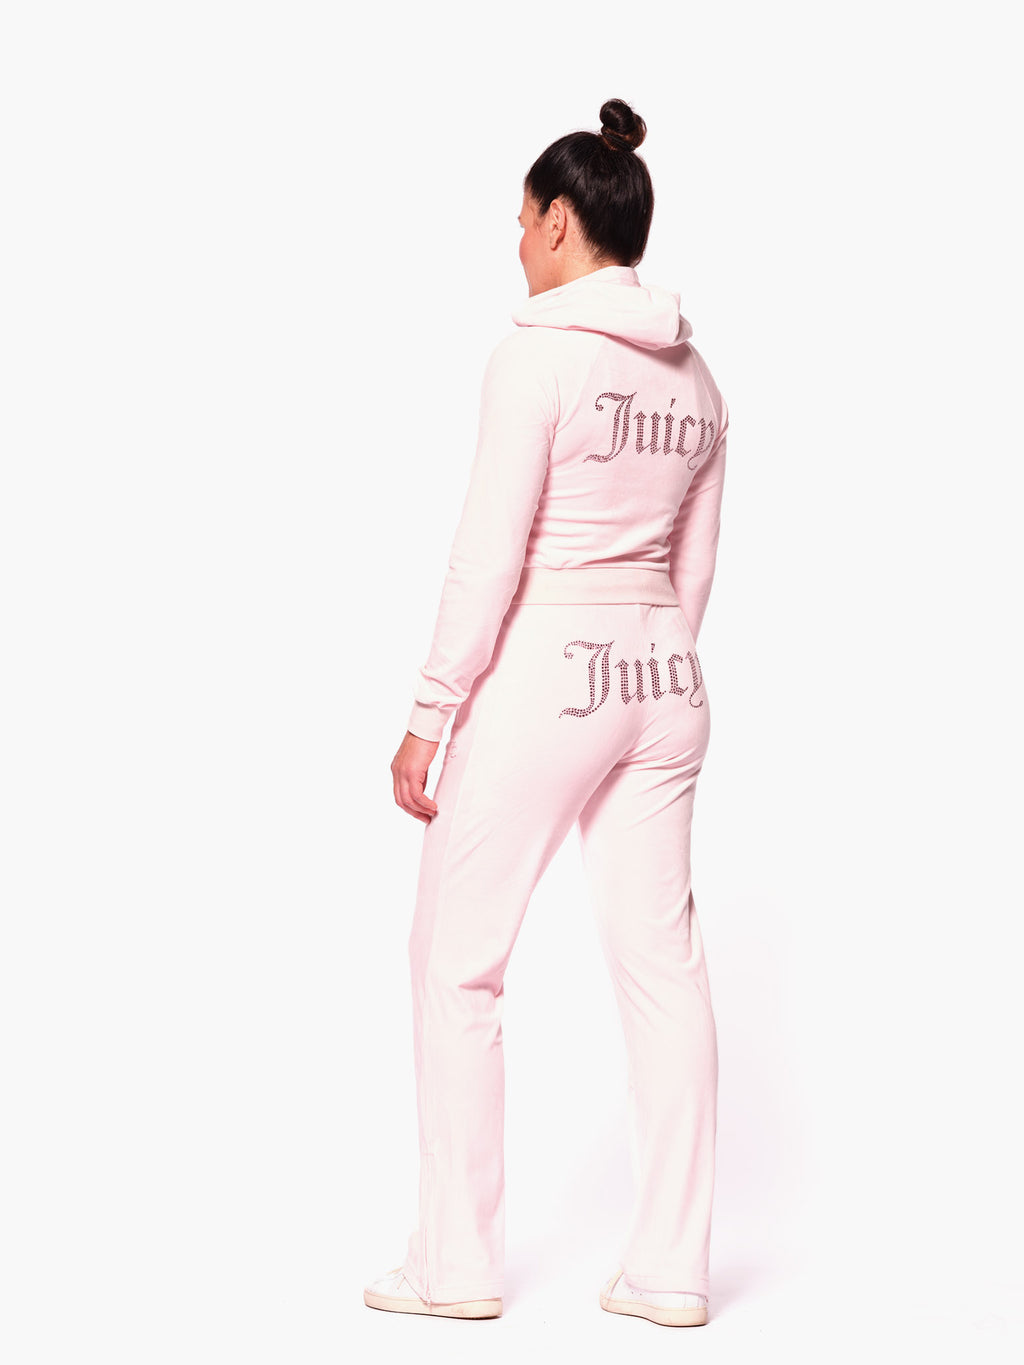 Tina Diamante Velour Pant Almond Blossom - Juicy Couture Scandinavia